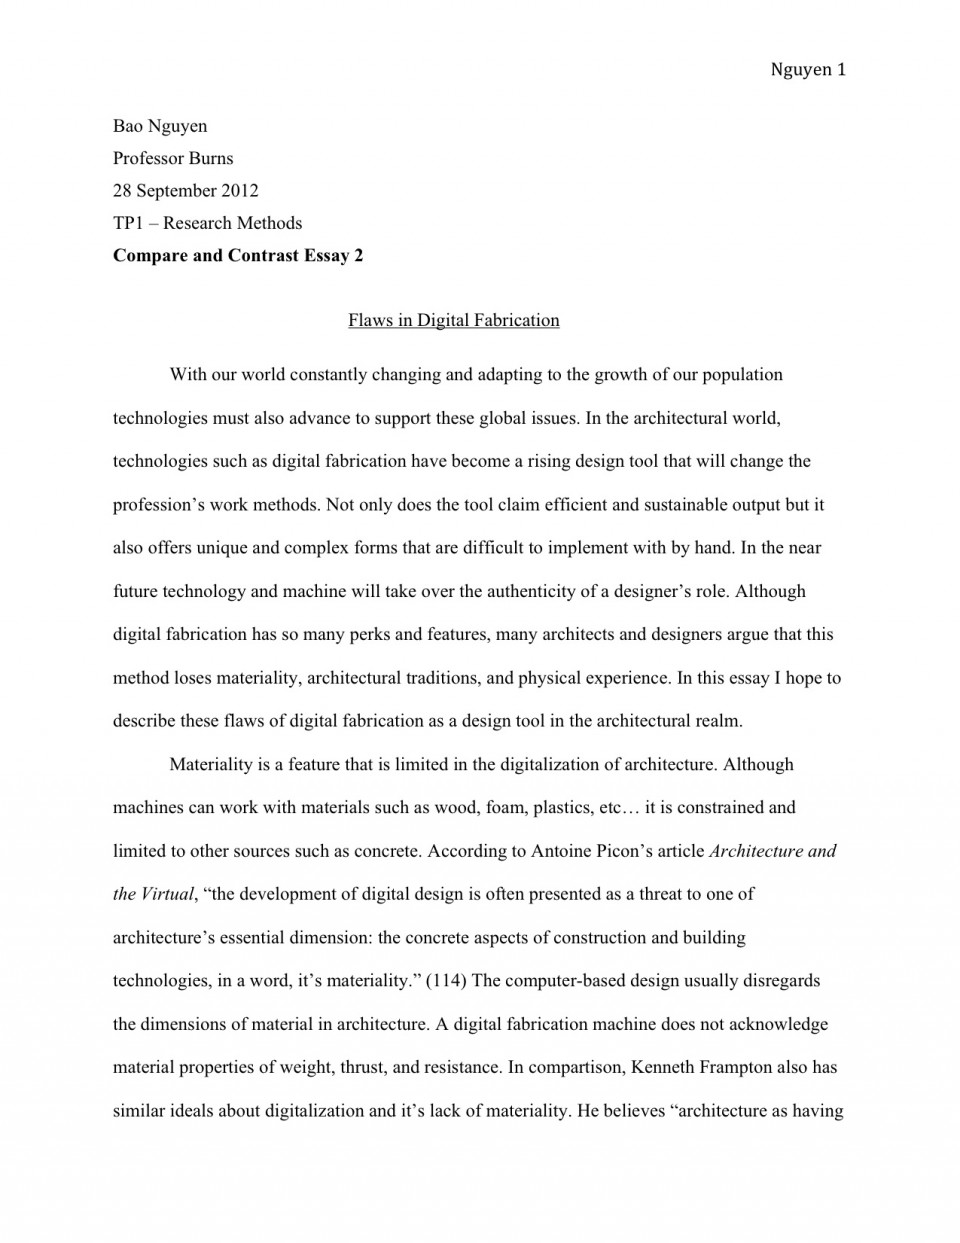 005 How To Write An Essay Example Tp1 3 Shocking In Mla Format 2018 Introduction For College Paper Apa 960